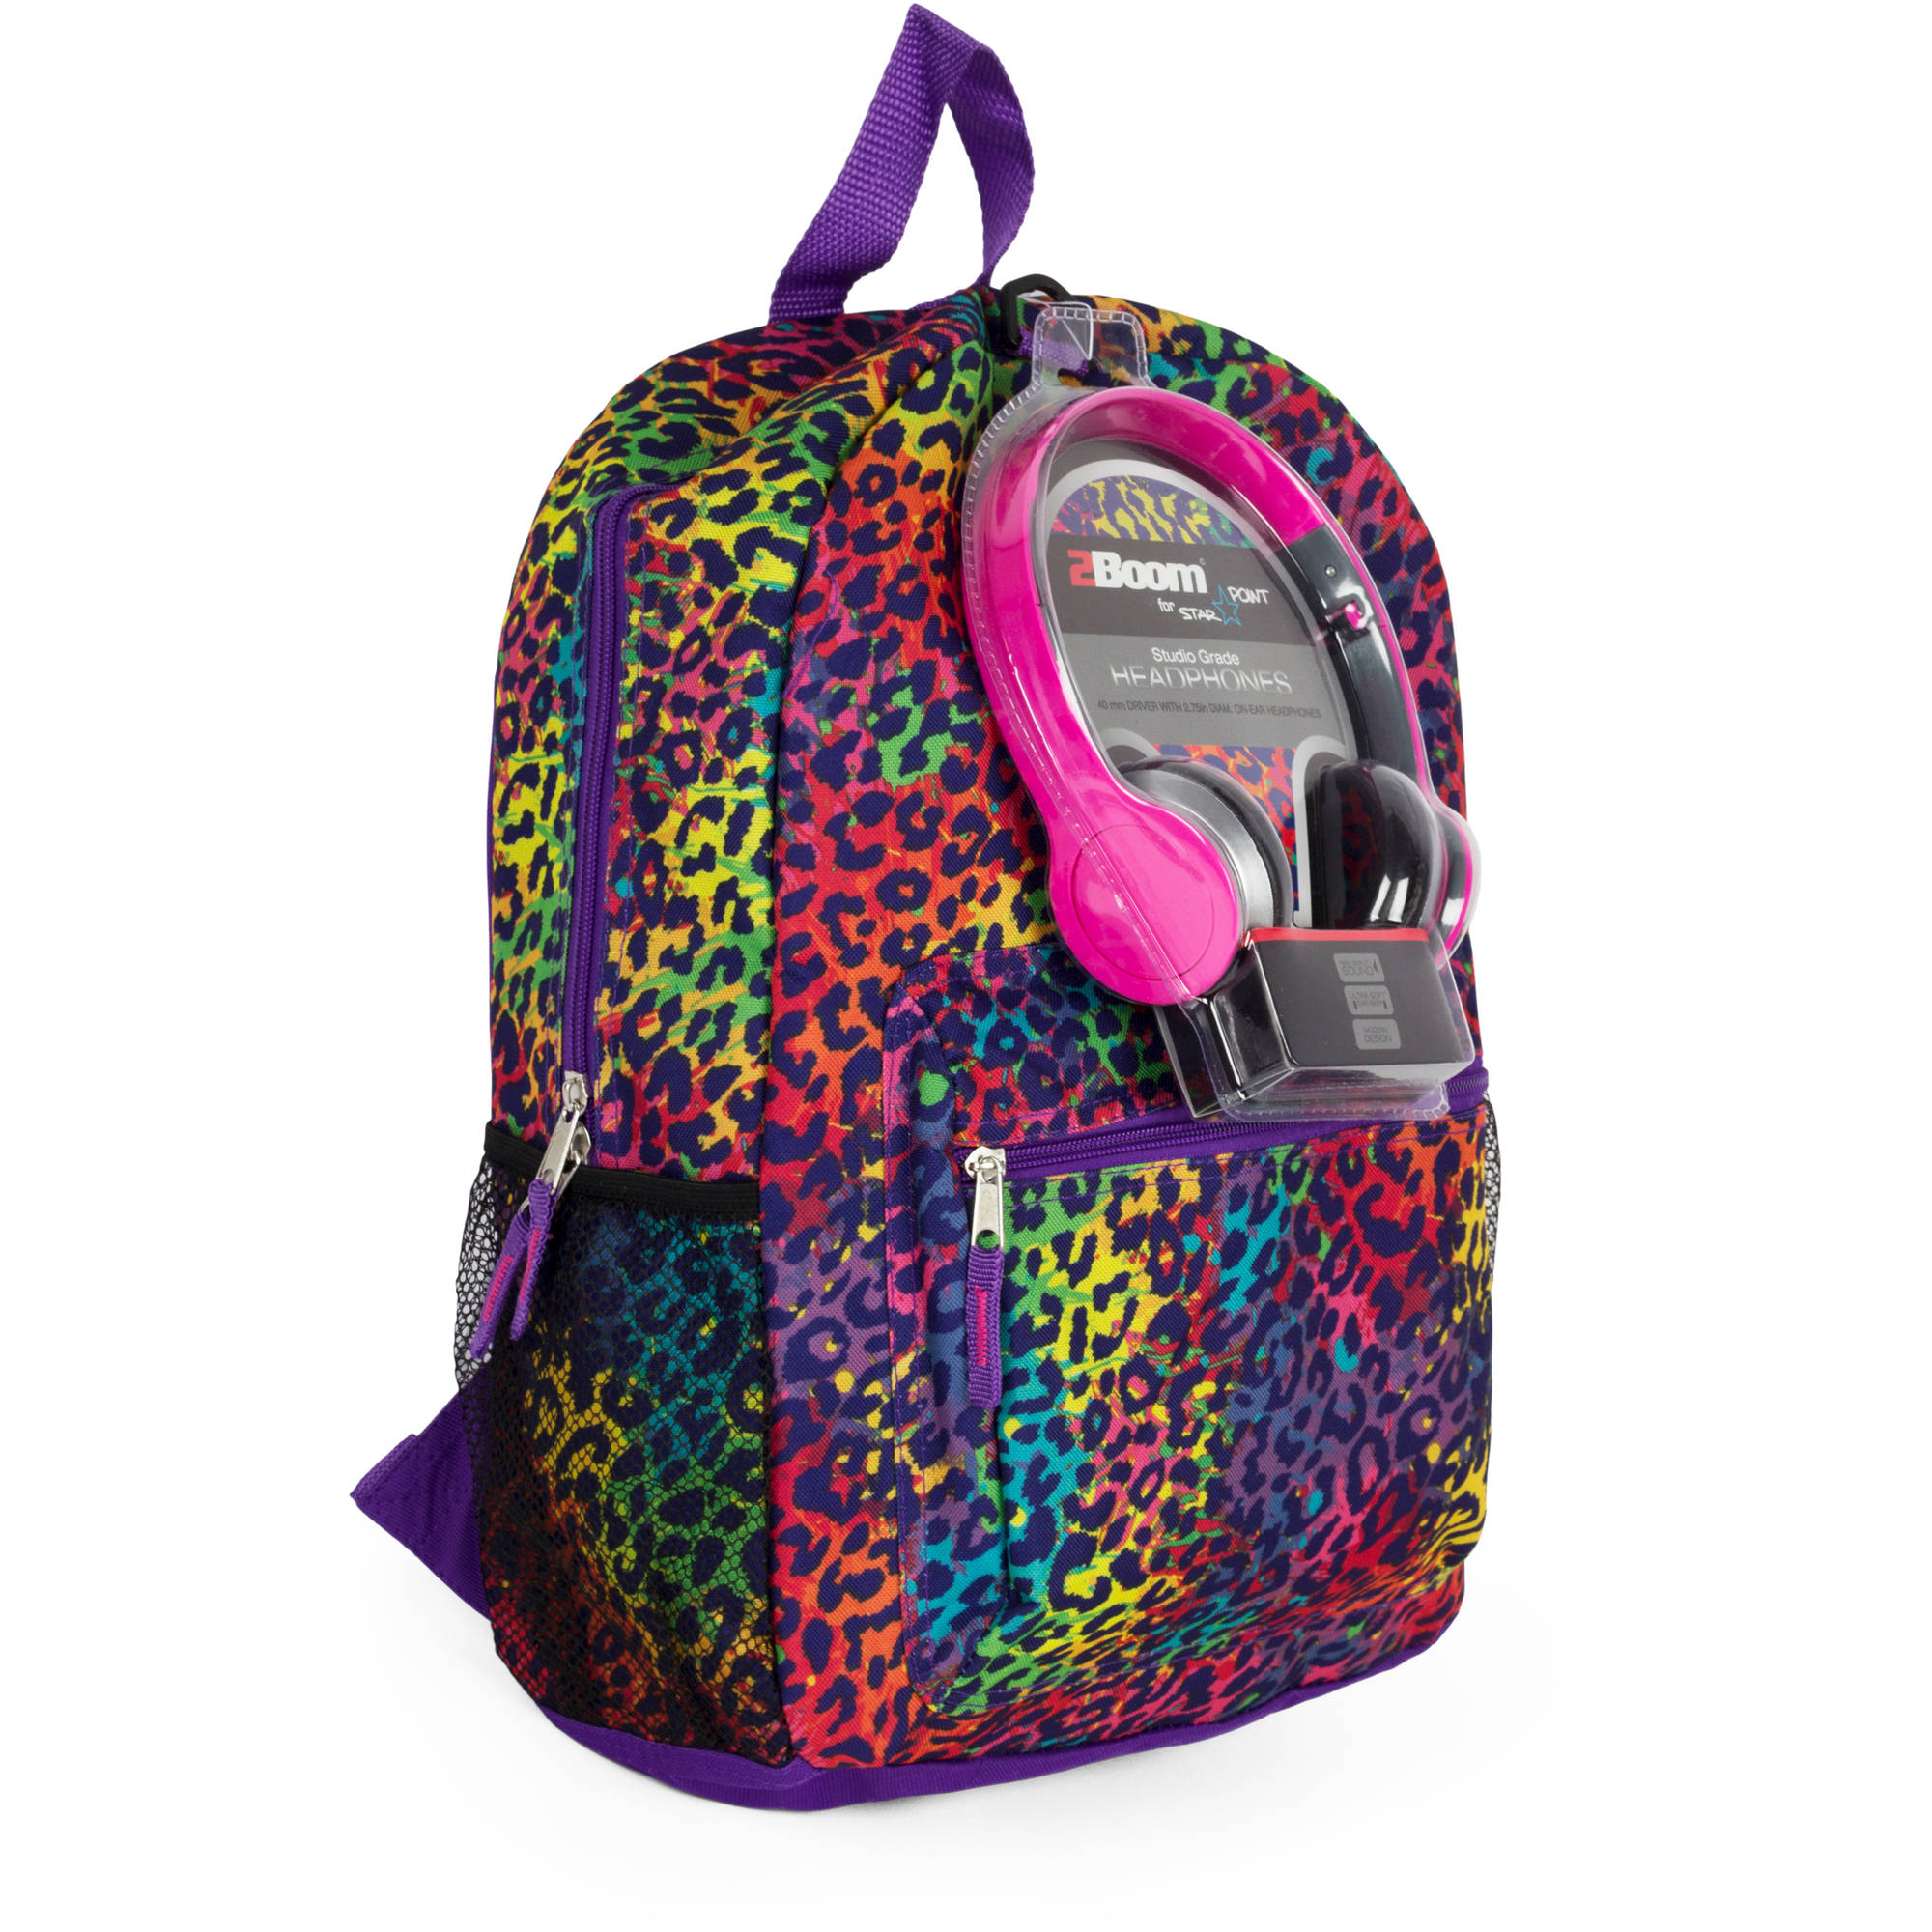 "Rainbow Cheetah 17"" Backpack with Headphones"